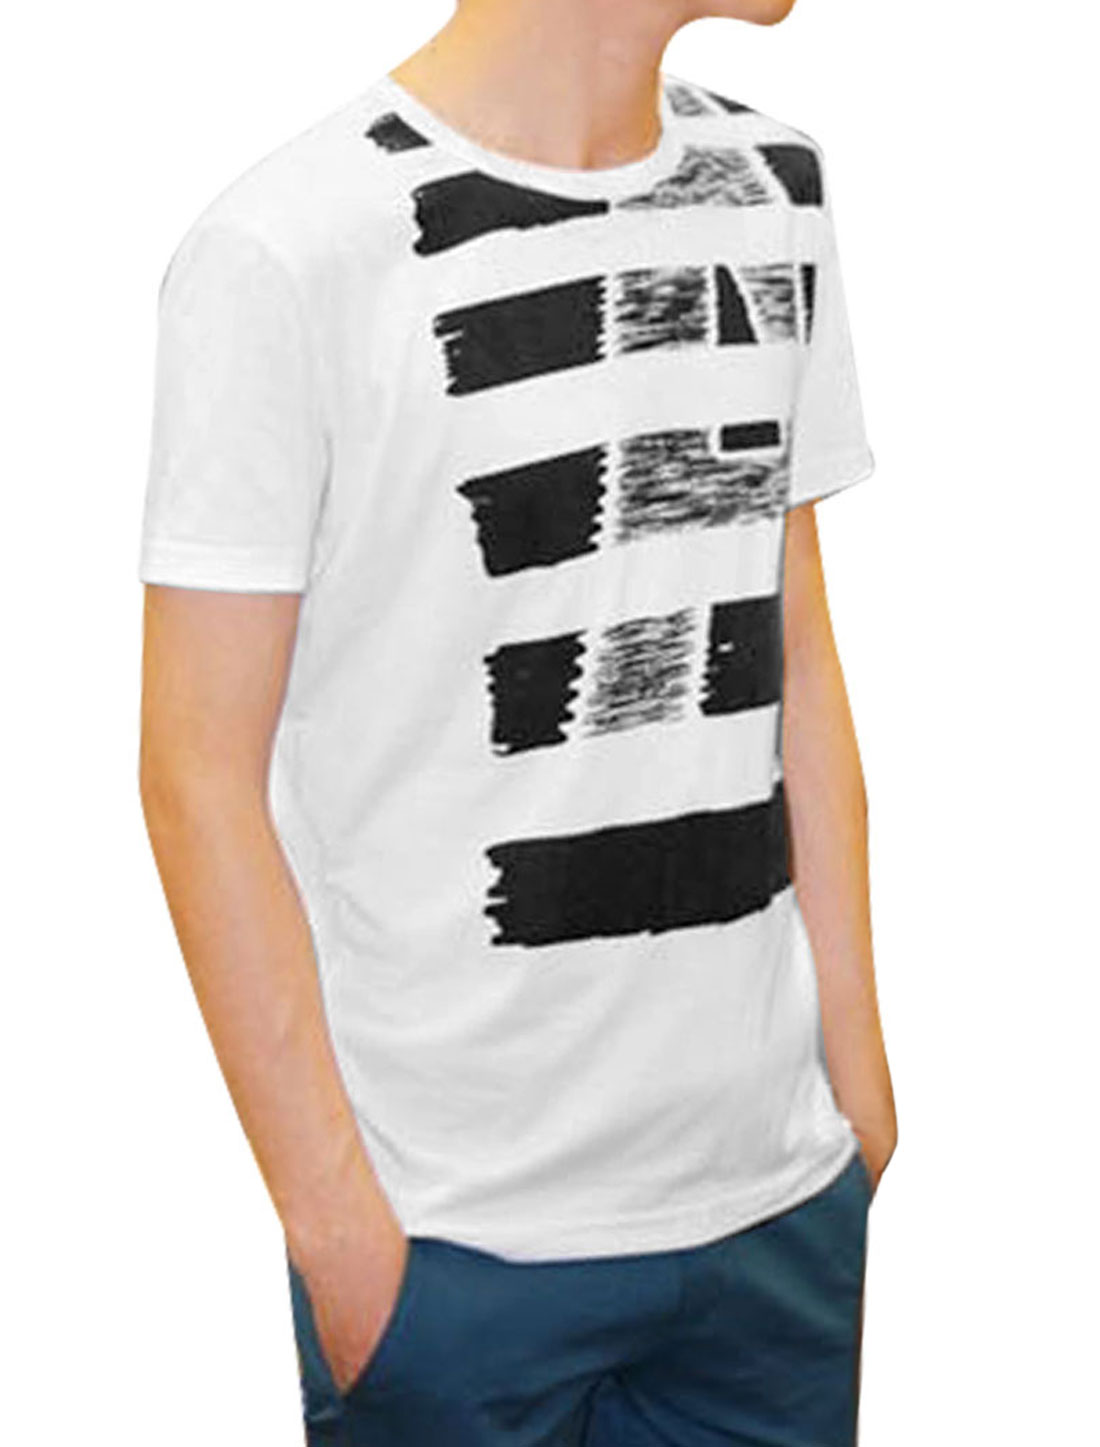 S Men Short Sleeves Round Neck Letters Pattern White Fashion T-Shirt